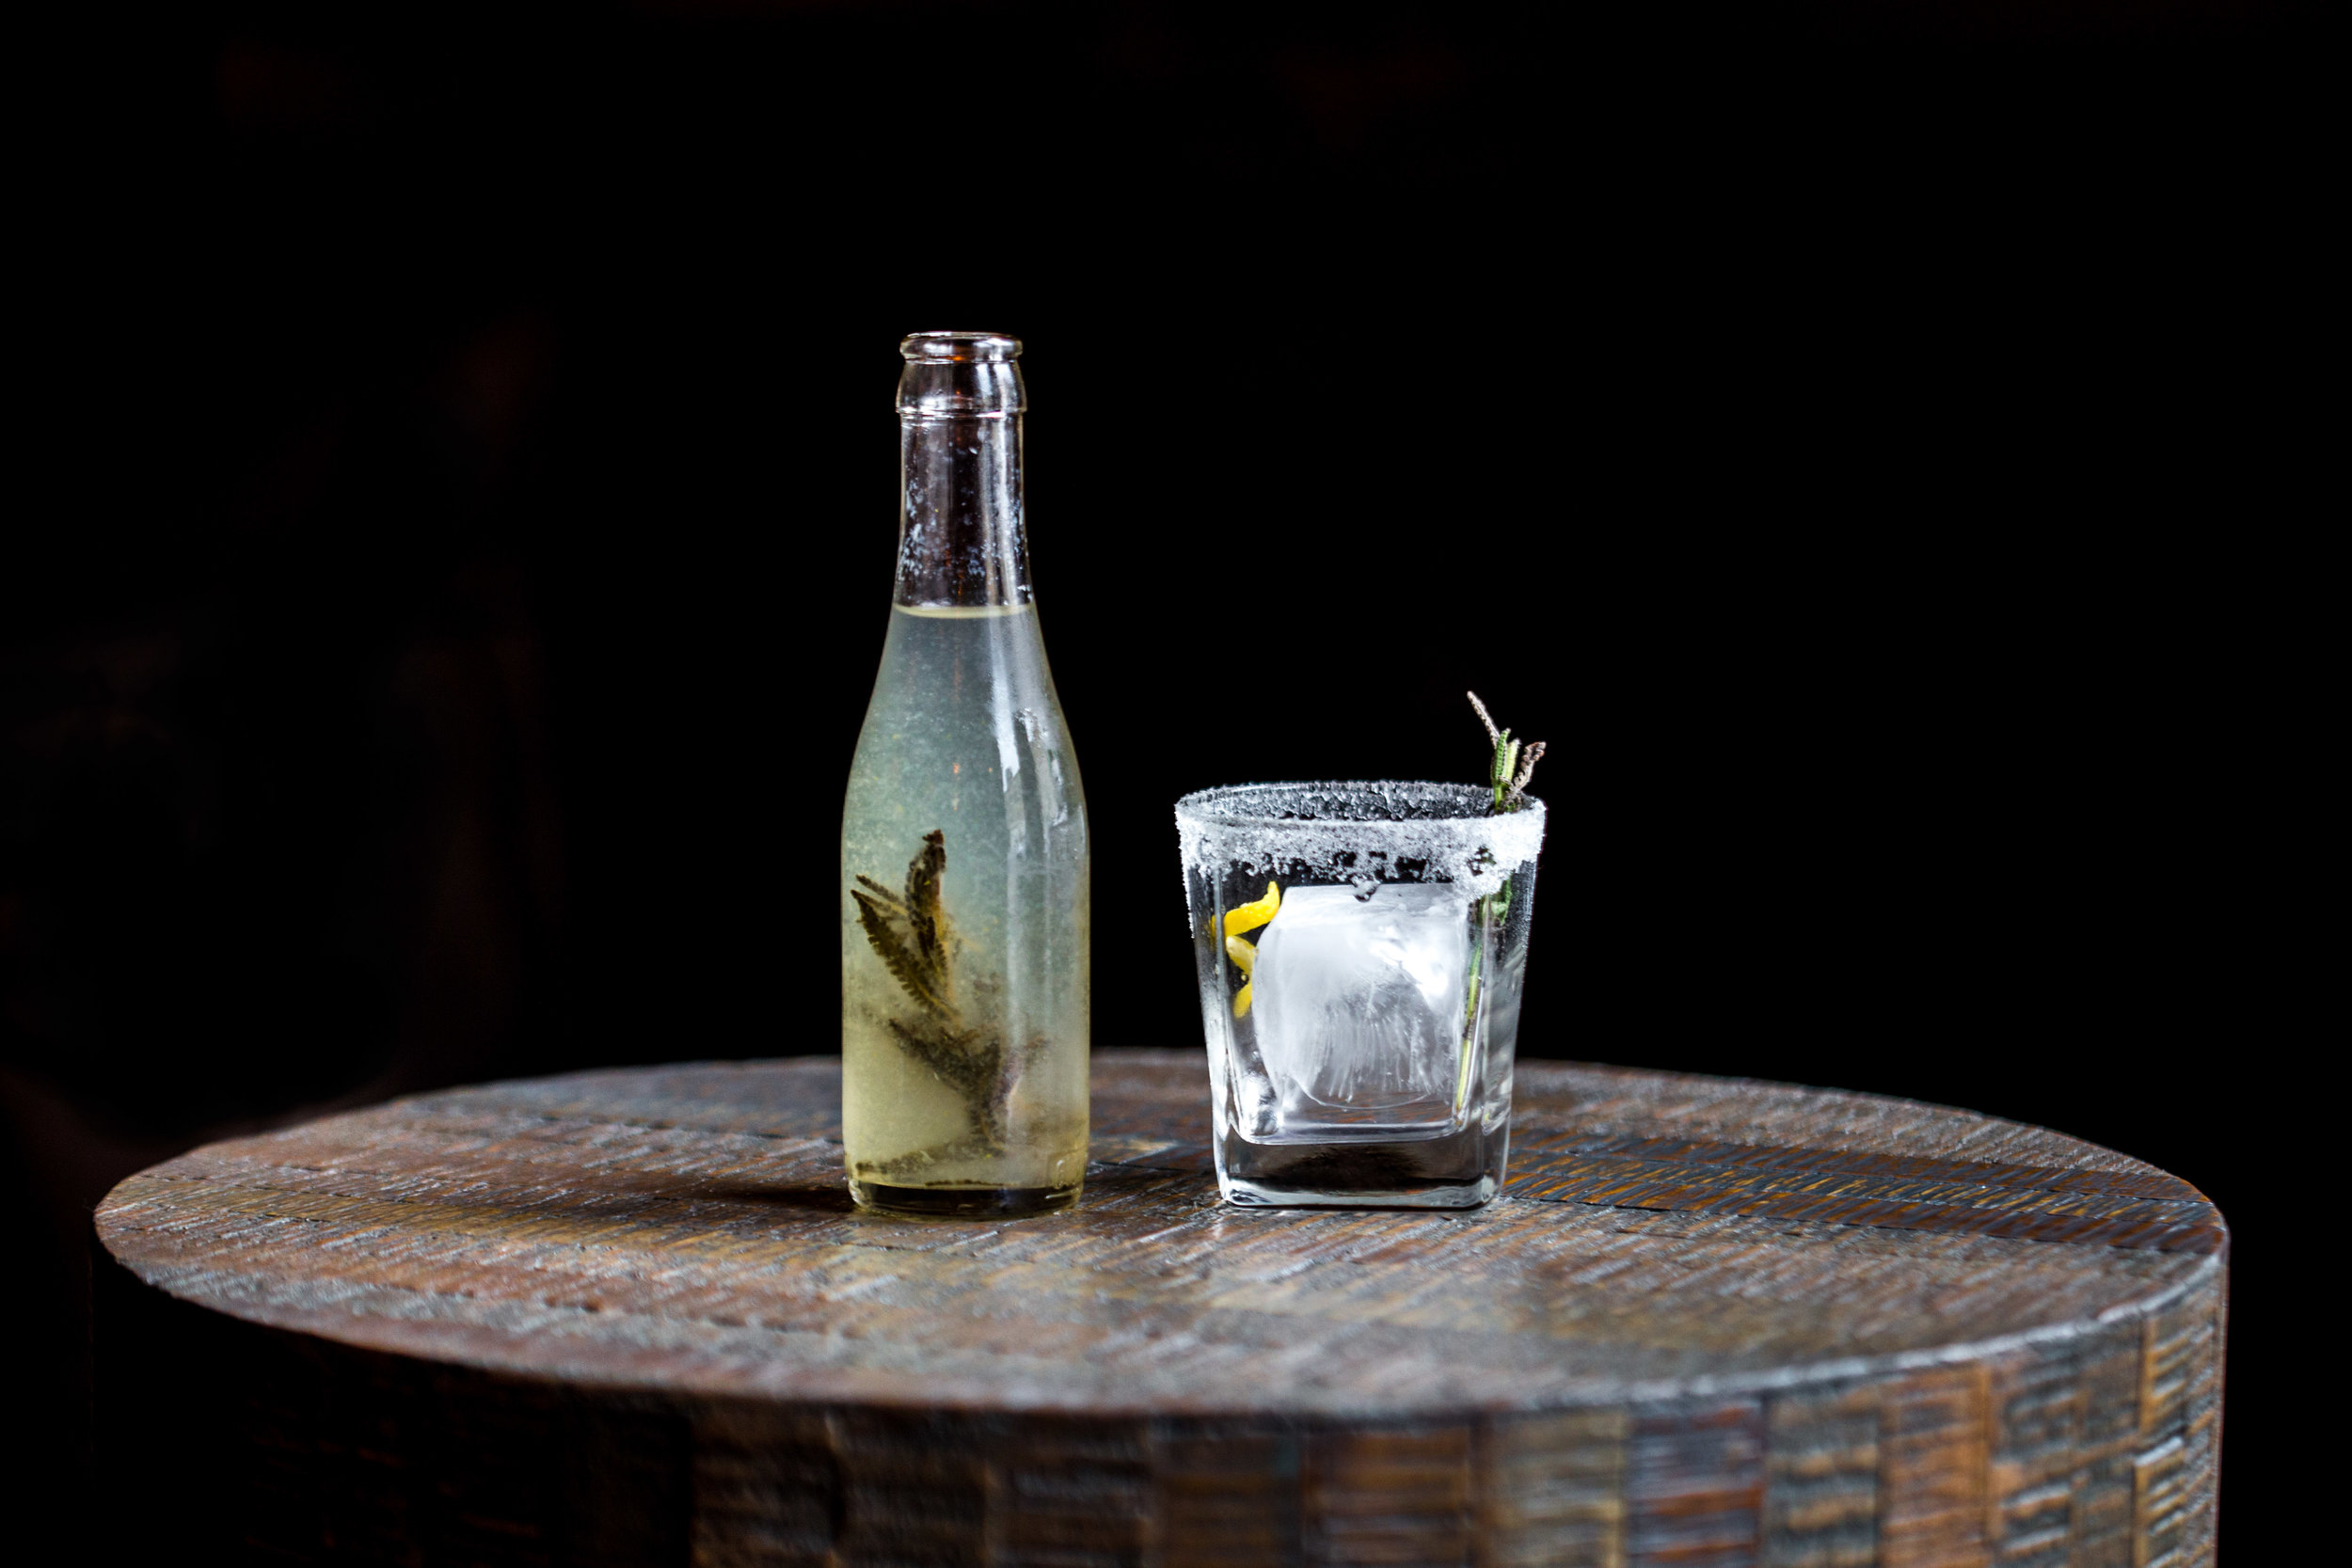 5 cocktails to try at O'Dowd's Gastrobar in Kansas City